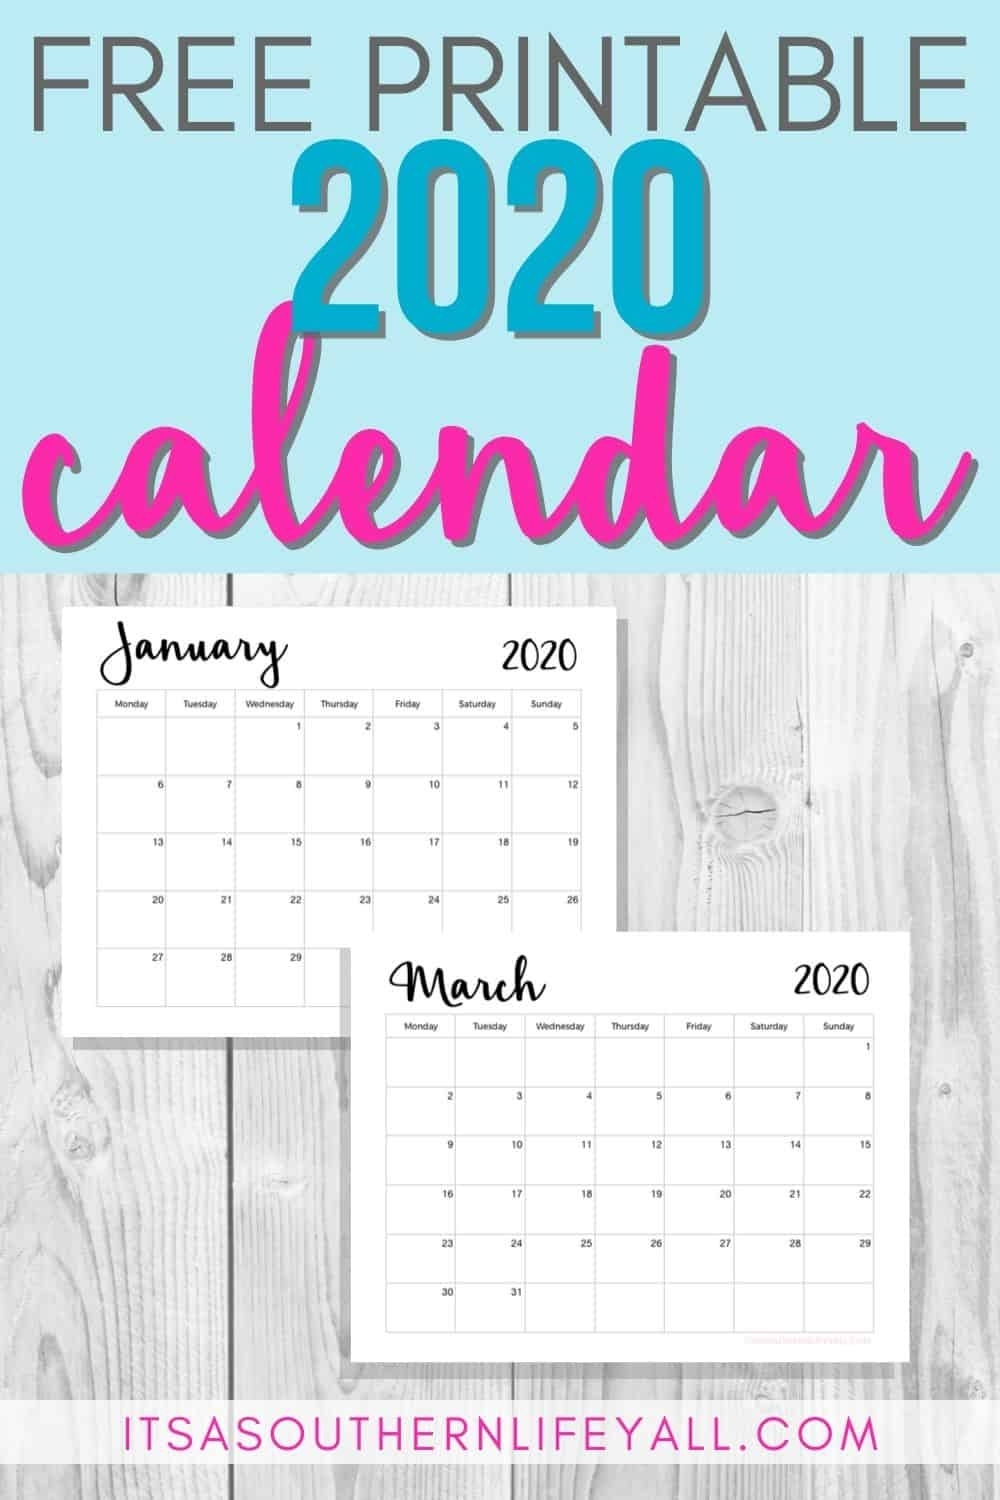 Free Printable 2020 Calendar - It's A Southern Life Y'all